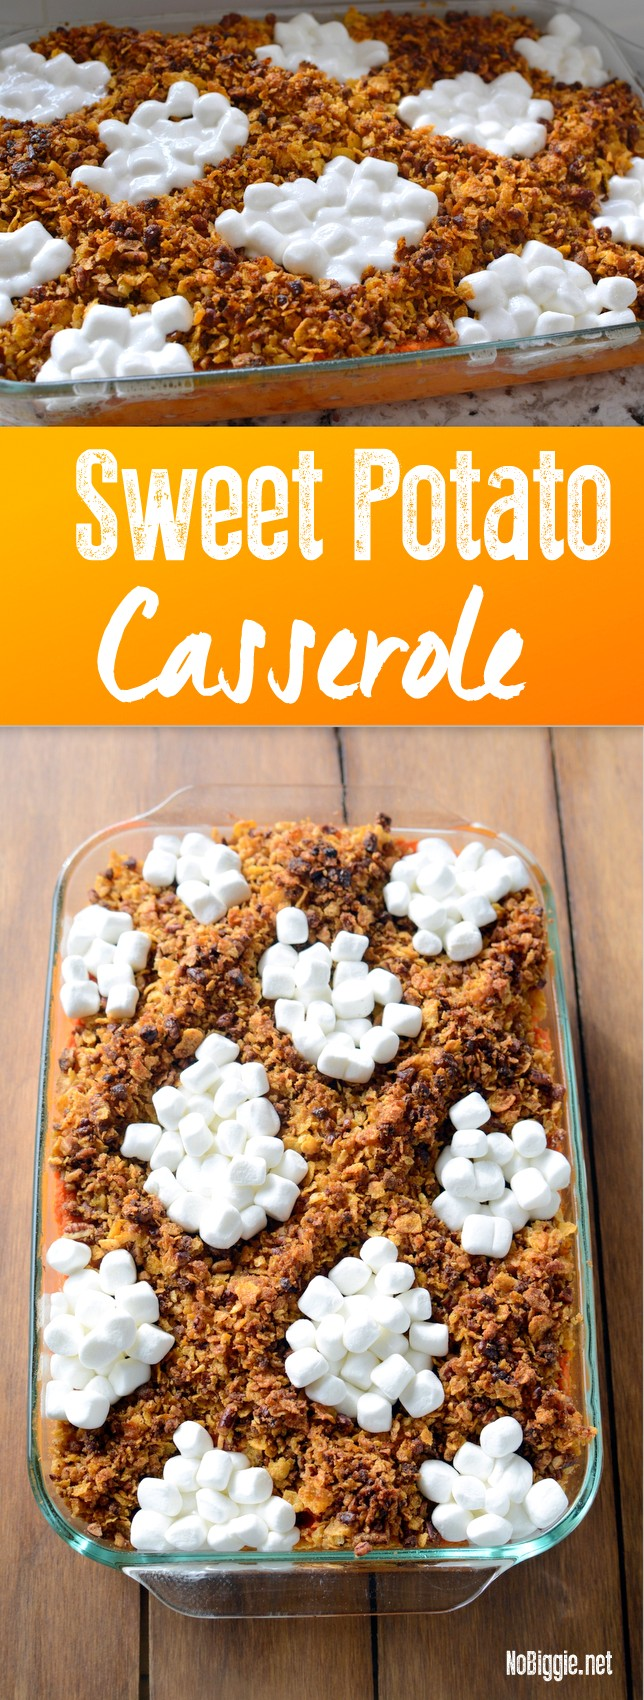 http://www.nobiggie.net/wp-content/uploads/2016/11/Sweet-potato-casserole-for-ThanksGiving-Dinner.jpg